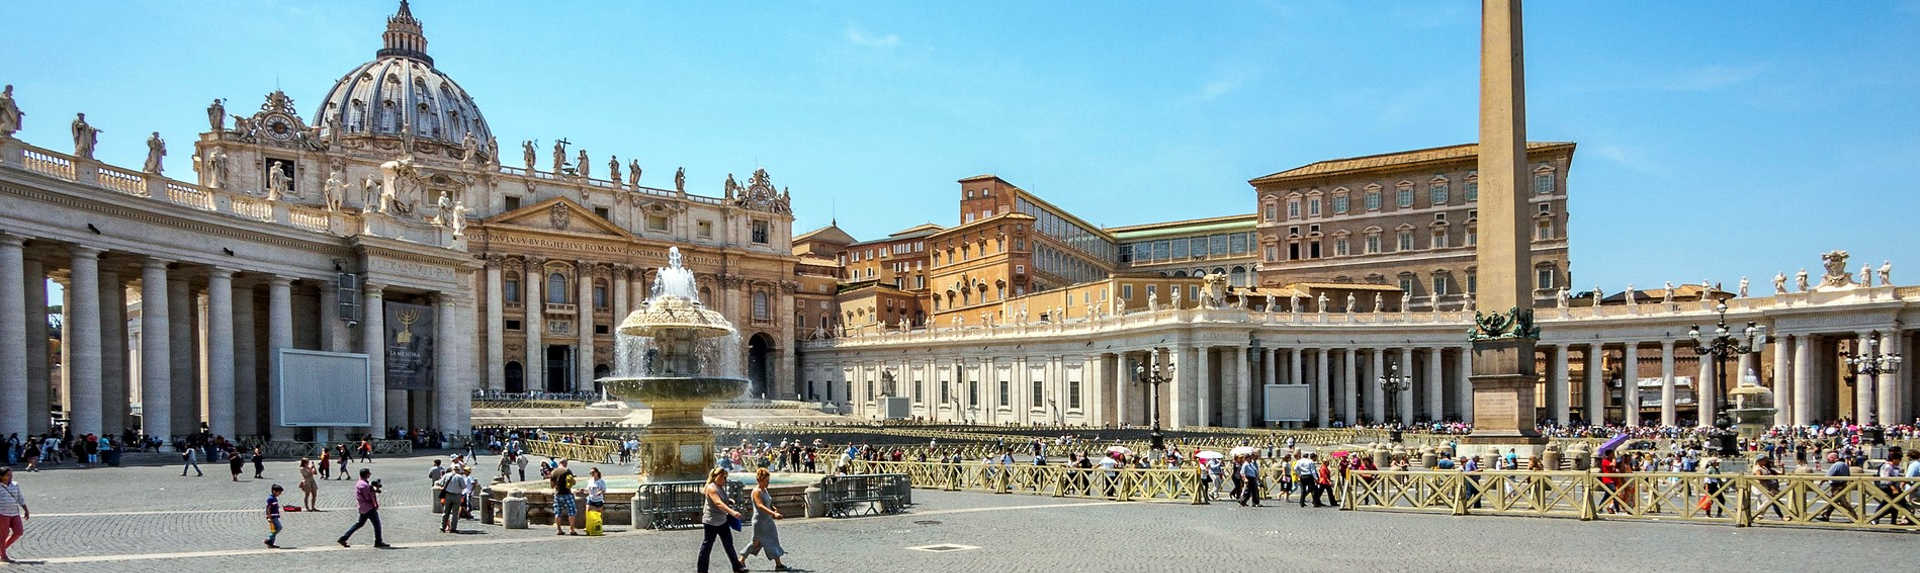 How much does it cost to tour the Vatican?